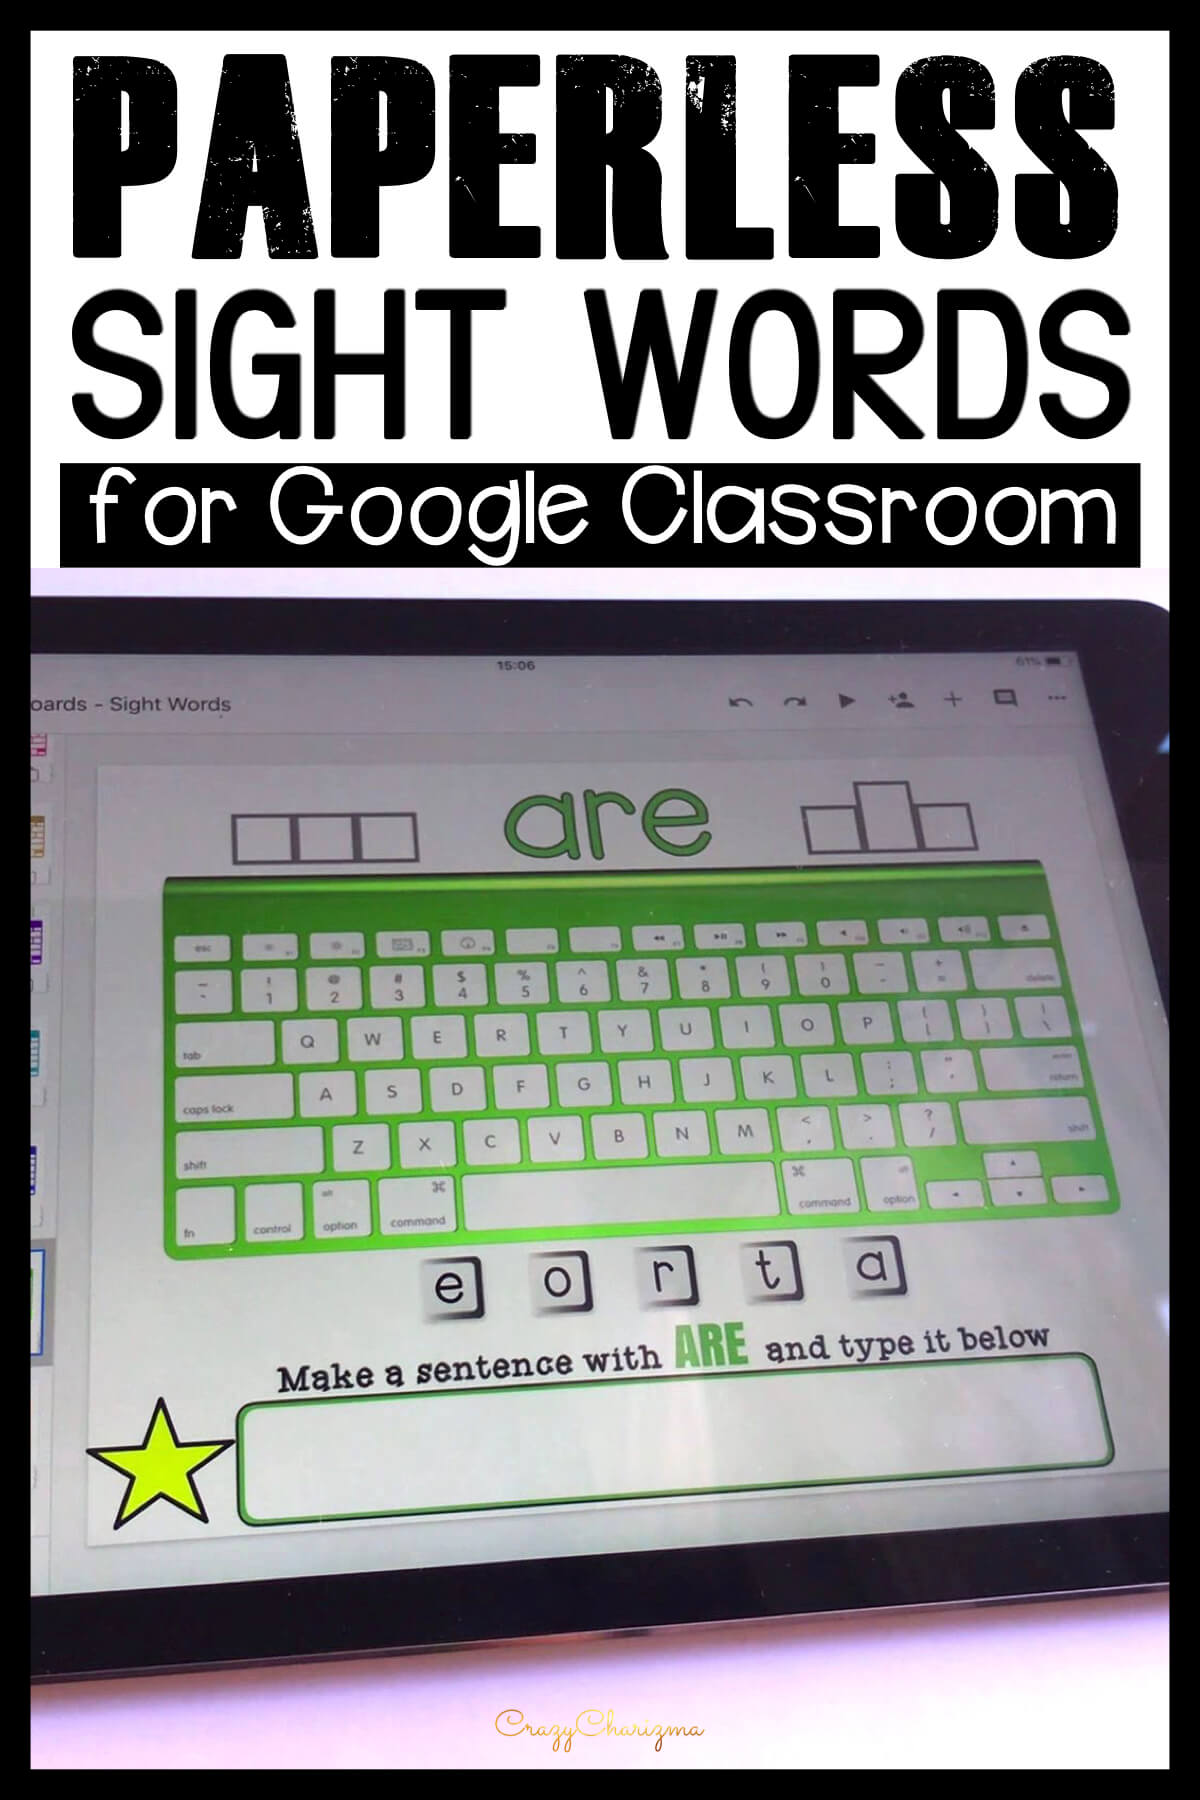 Google Classroom Activities for Kindergarten   Sight Words Games: Grab paperless resources to practice sight words in a fun way. Let kids get engaged with word work and play with high-frequency words. They will love typing words, learn the keyboard, and build sentences.